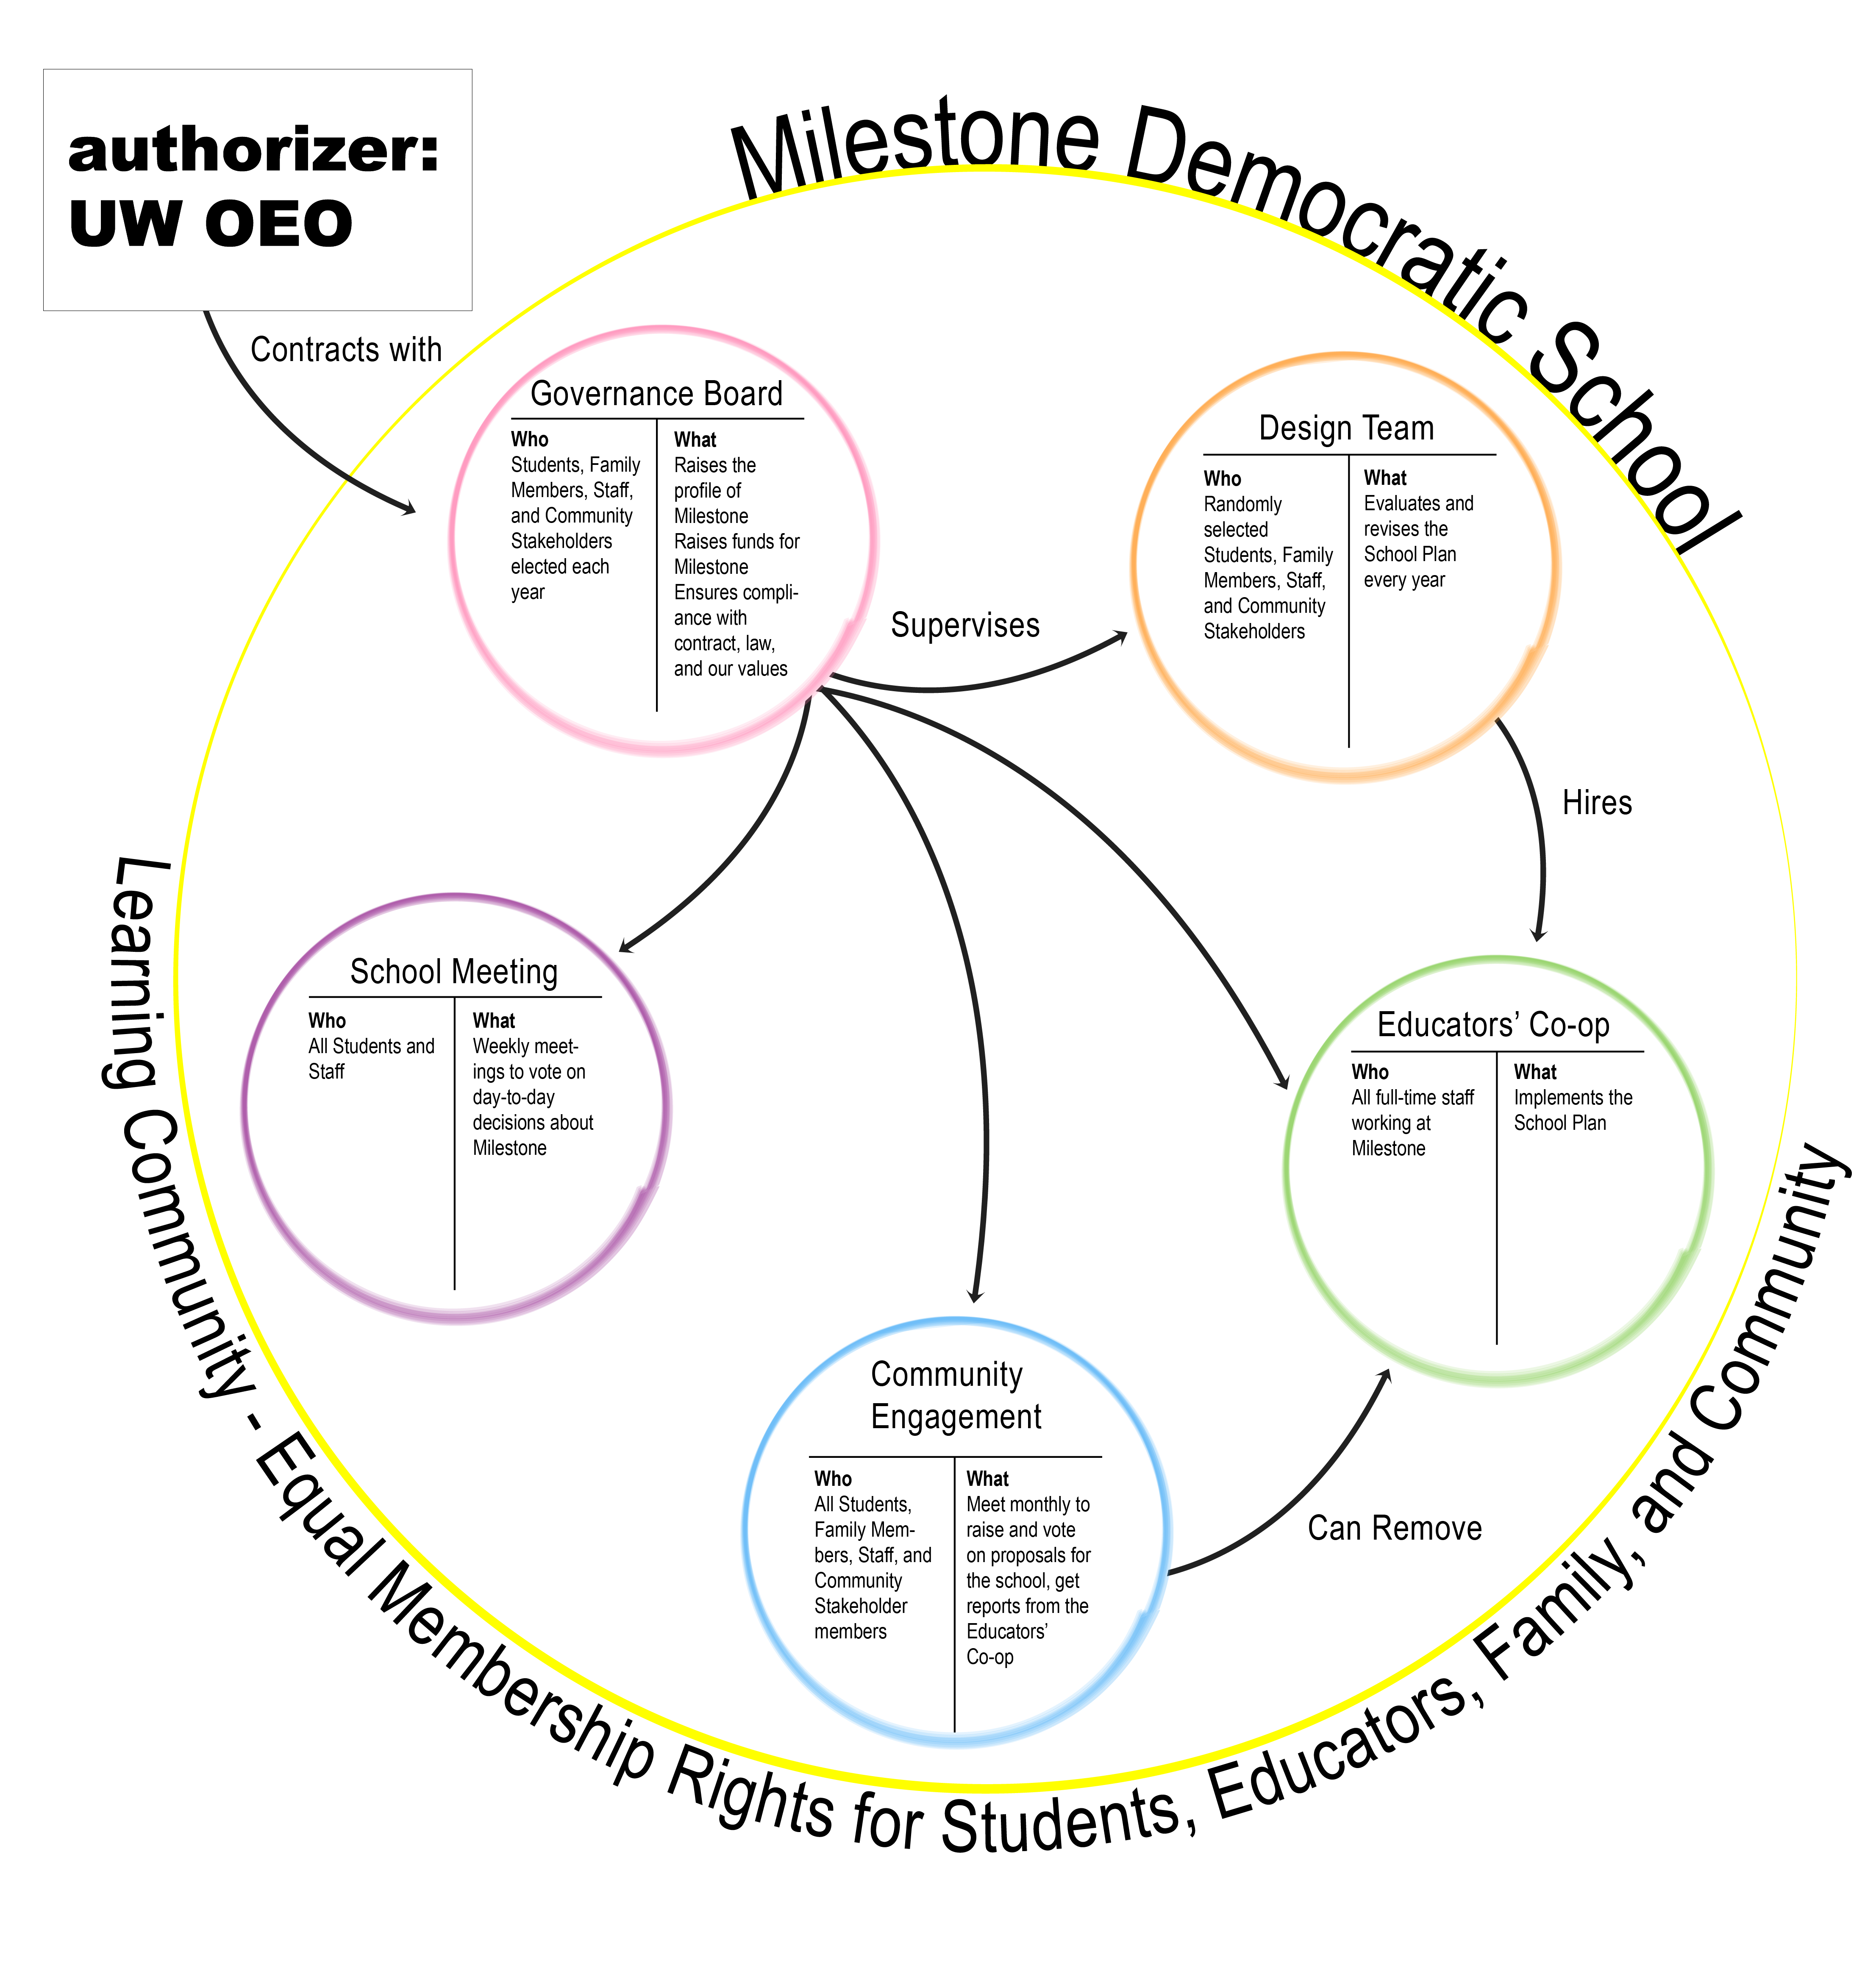 Flowchart showing the governance structure between Milestone Democratic School, their authorizer the University of Wisconsin System and school community.